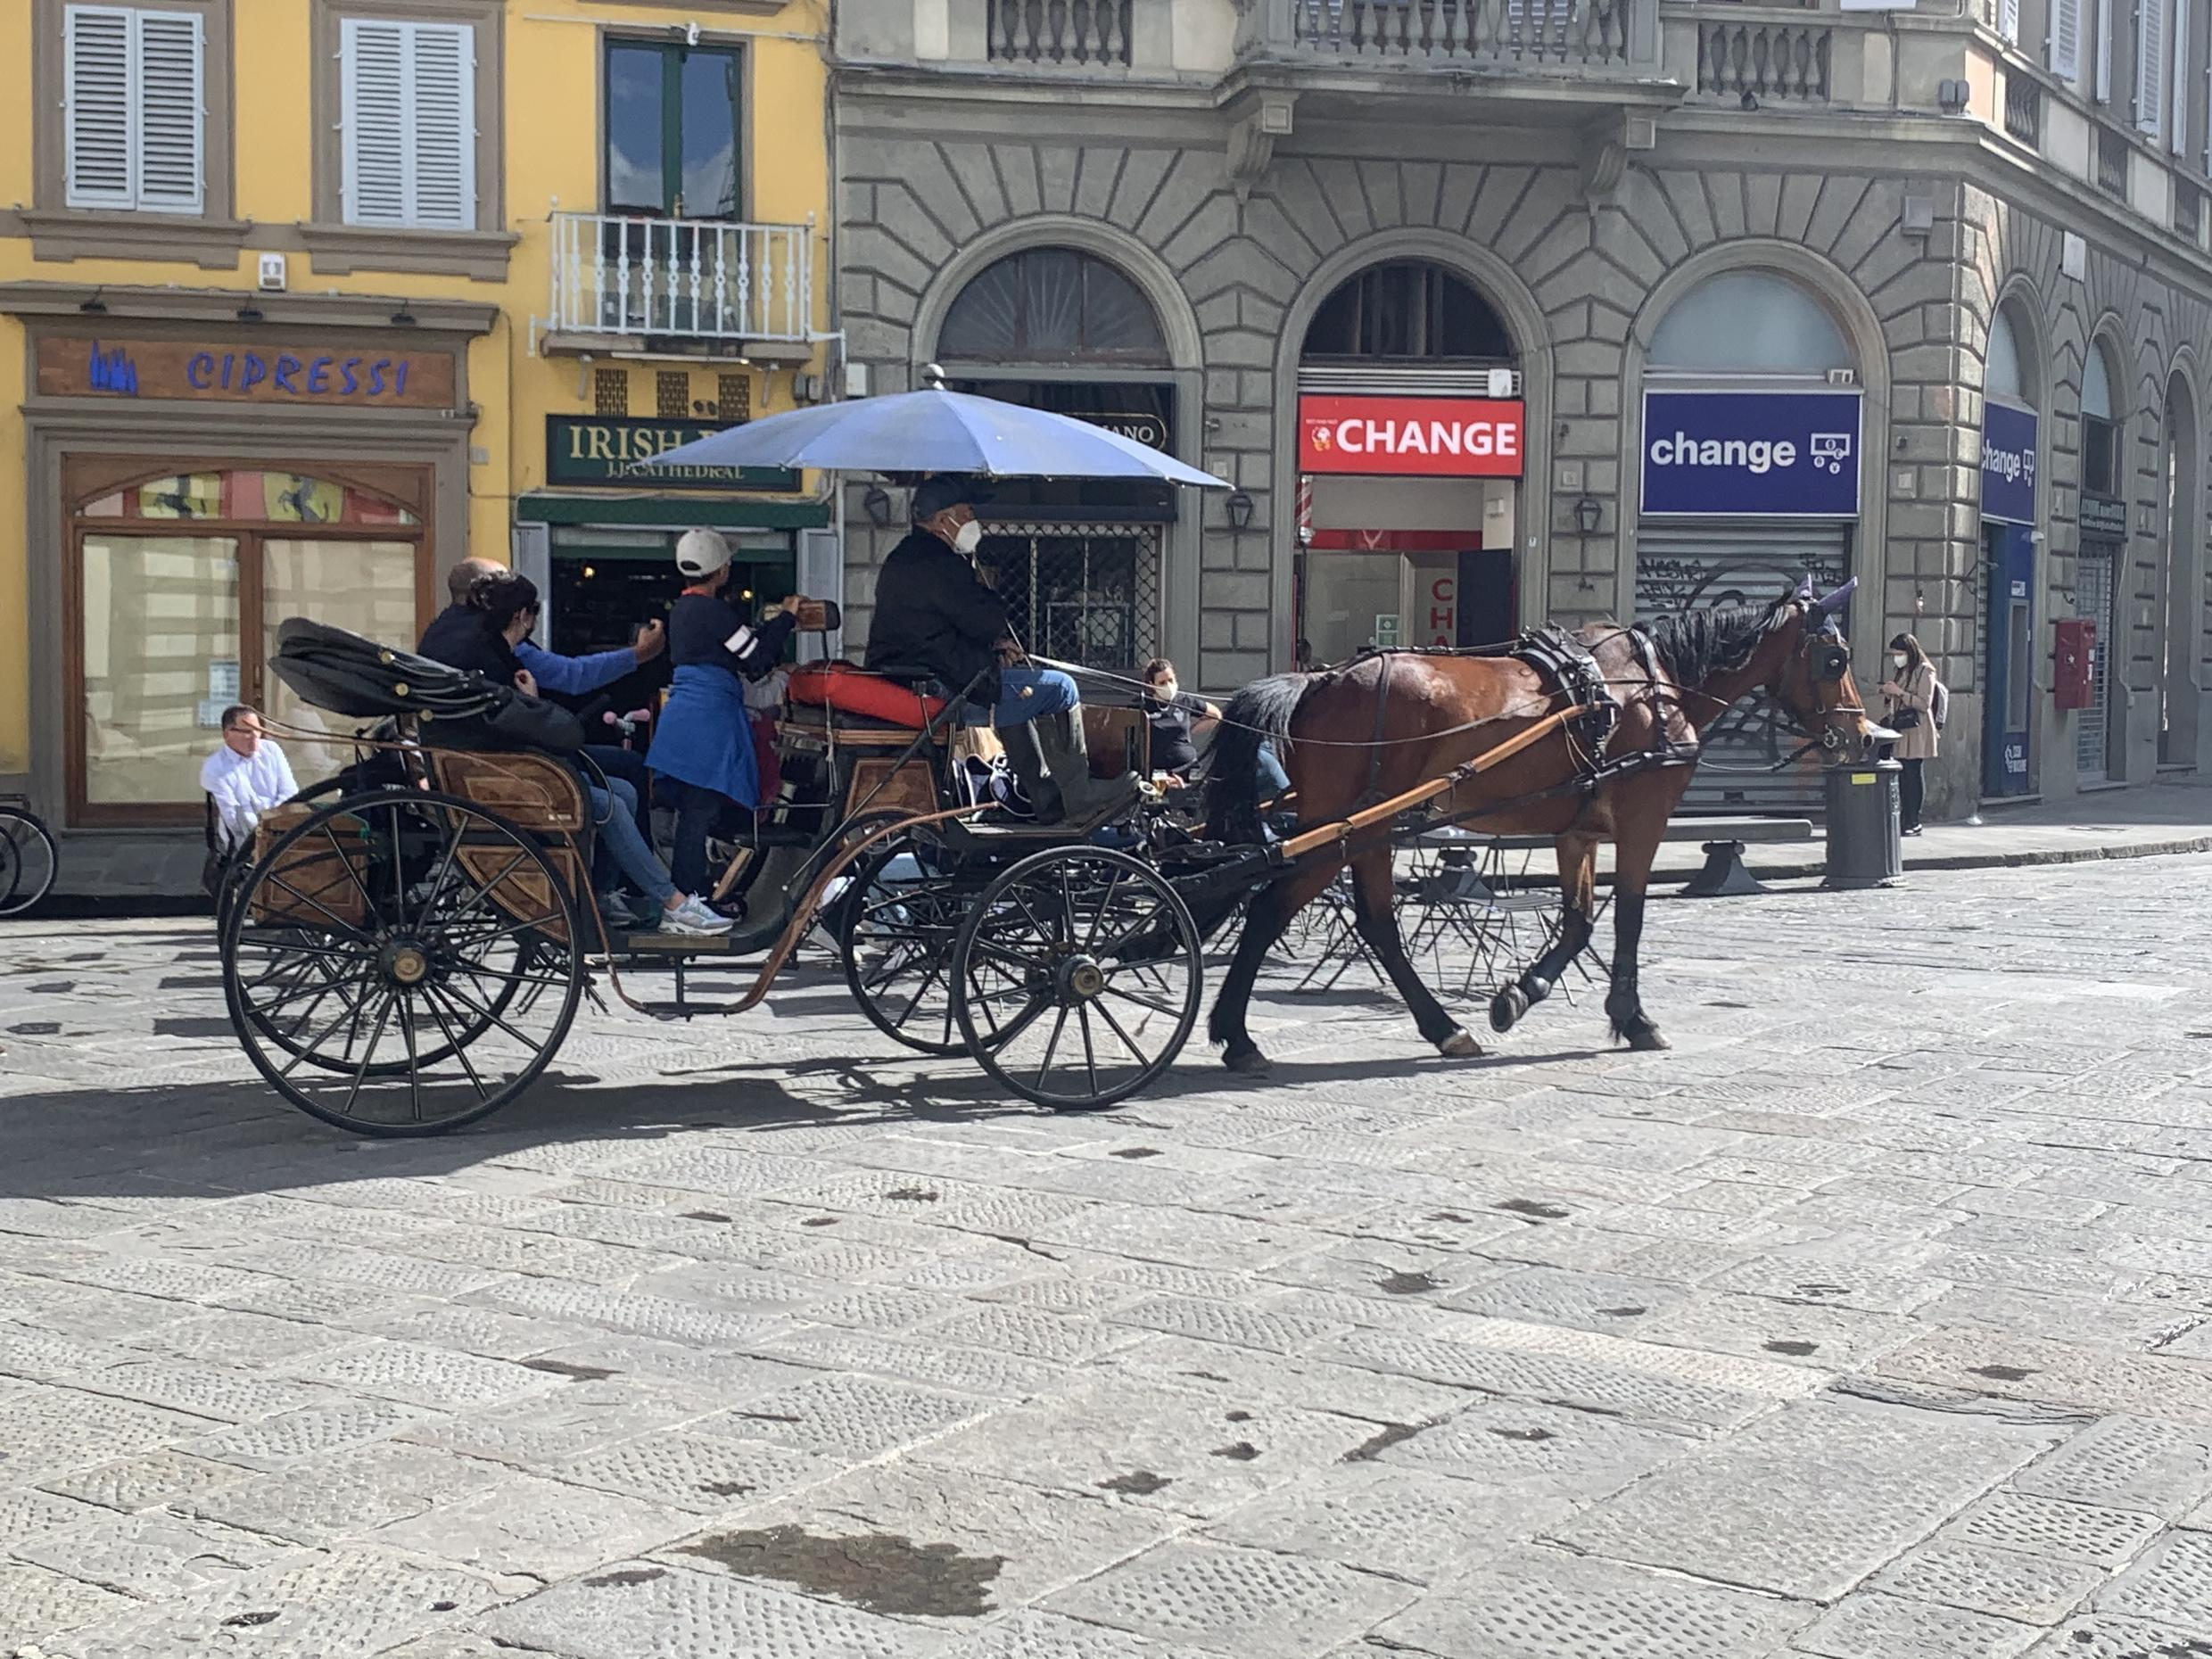 Tourists taking a ride with a horse and carriage in the streets of Florence, Italy, May 2021. The country is hoping to see an influx of foreign tourists this summer as Covid restrictions are lifted.